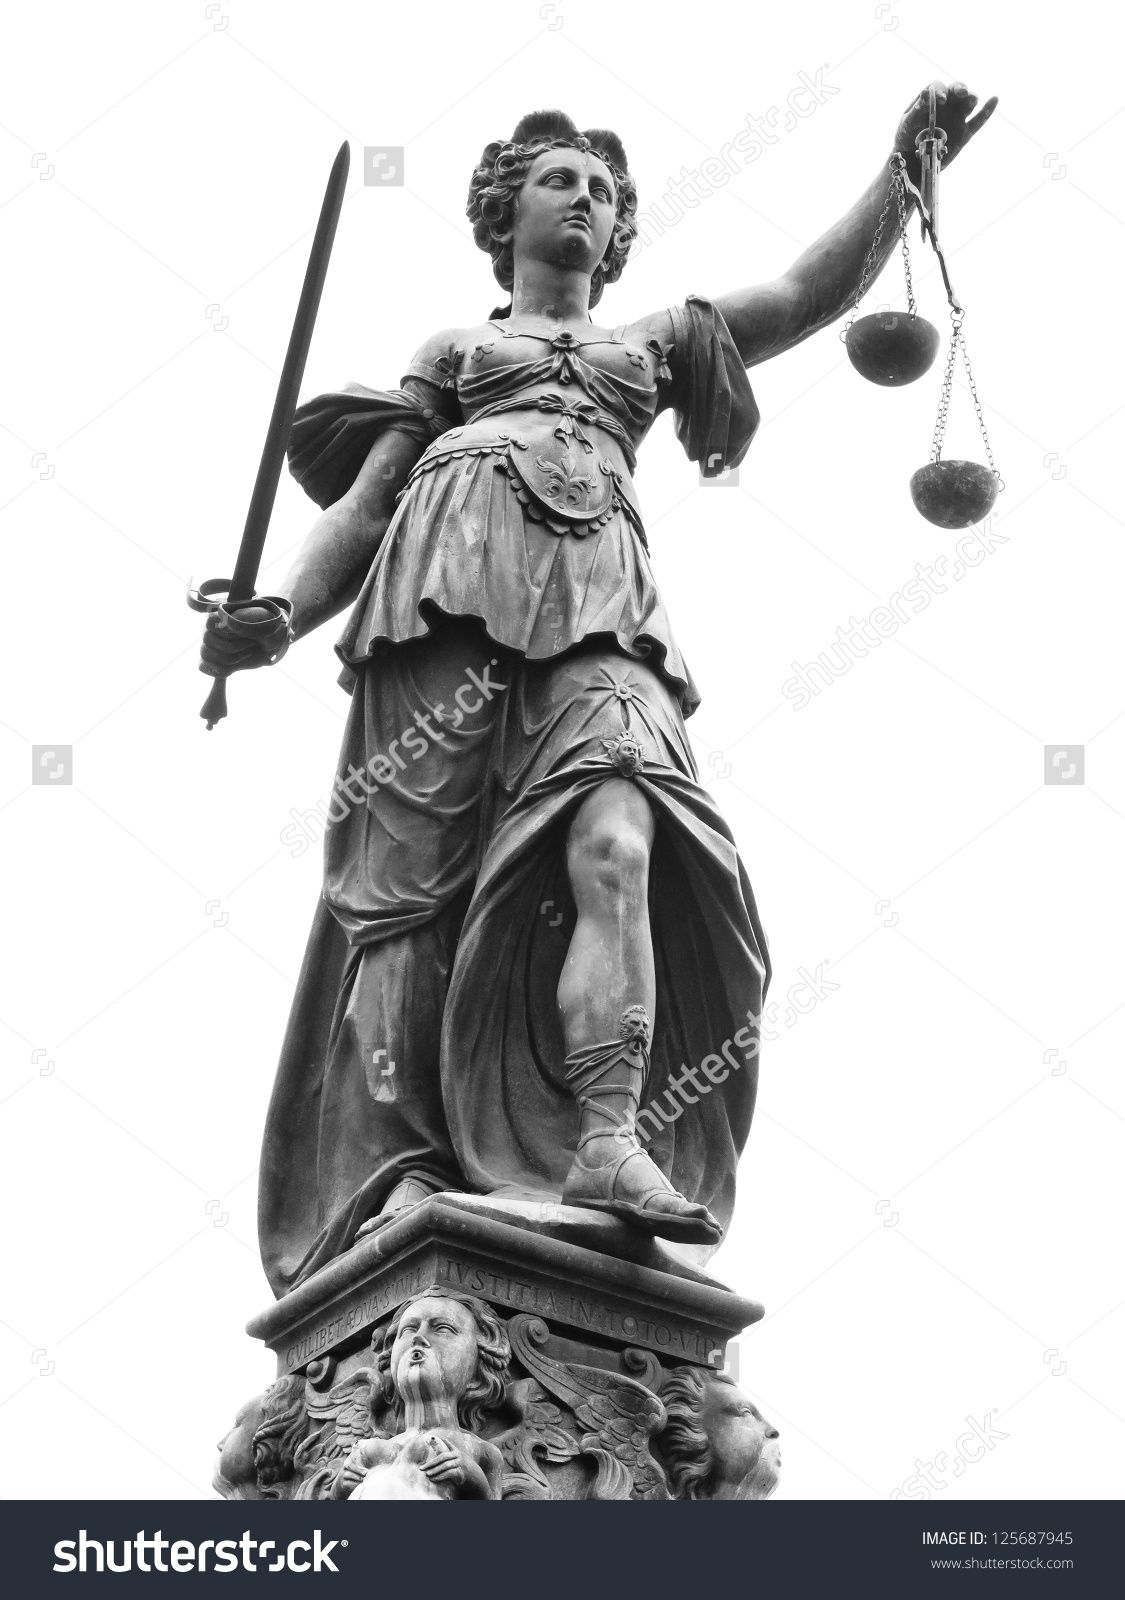 Statue Of Lady Justice Justitia In Frankfurt Germany Isolated On White Stock Photo 125687945 Shutterstock Lady Justice Statue Justitia